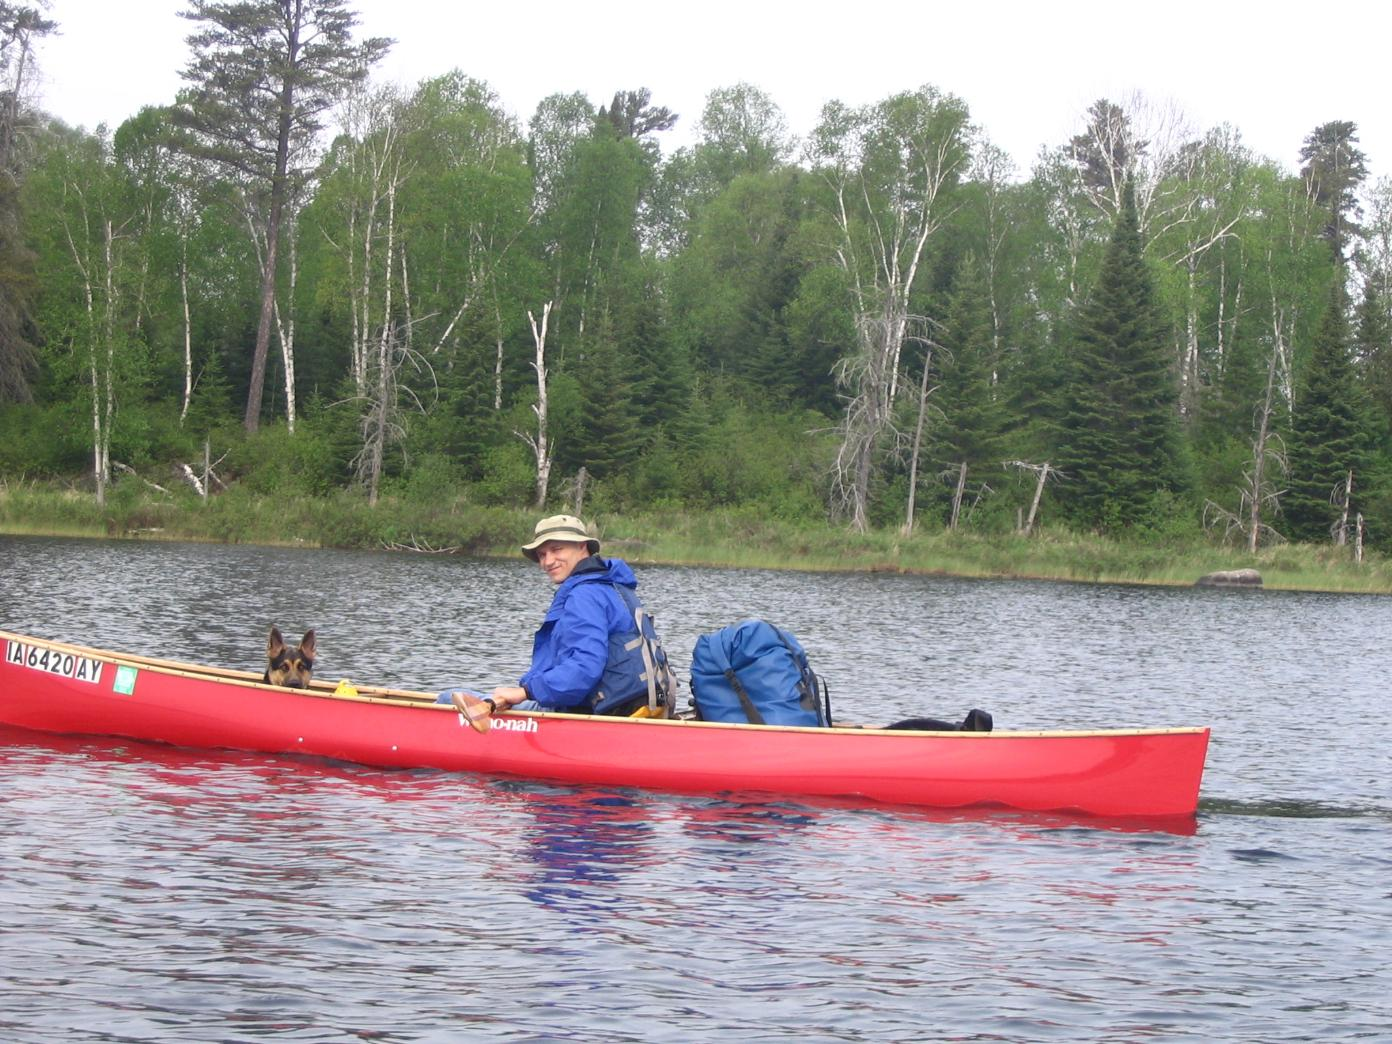 single men in wenonah Shop top brands of canoes for sale from coleman, pelican, sun dolphin and more free shipping over $25  check out life vests for men, women and children.